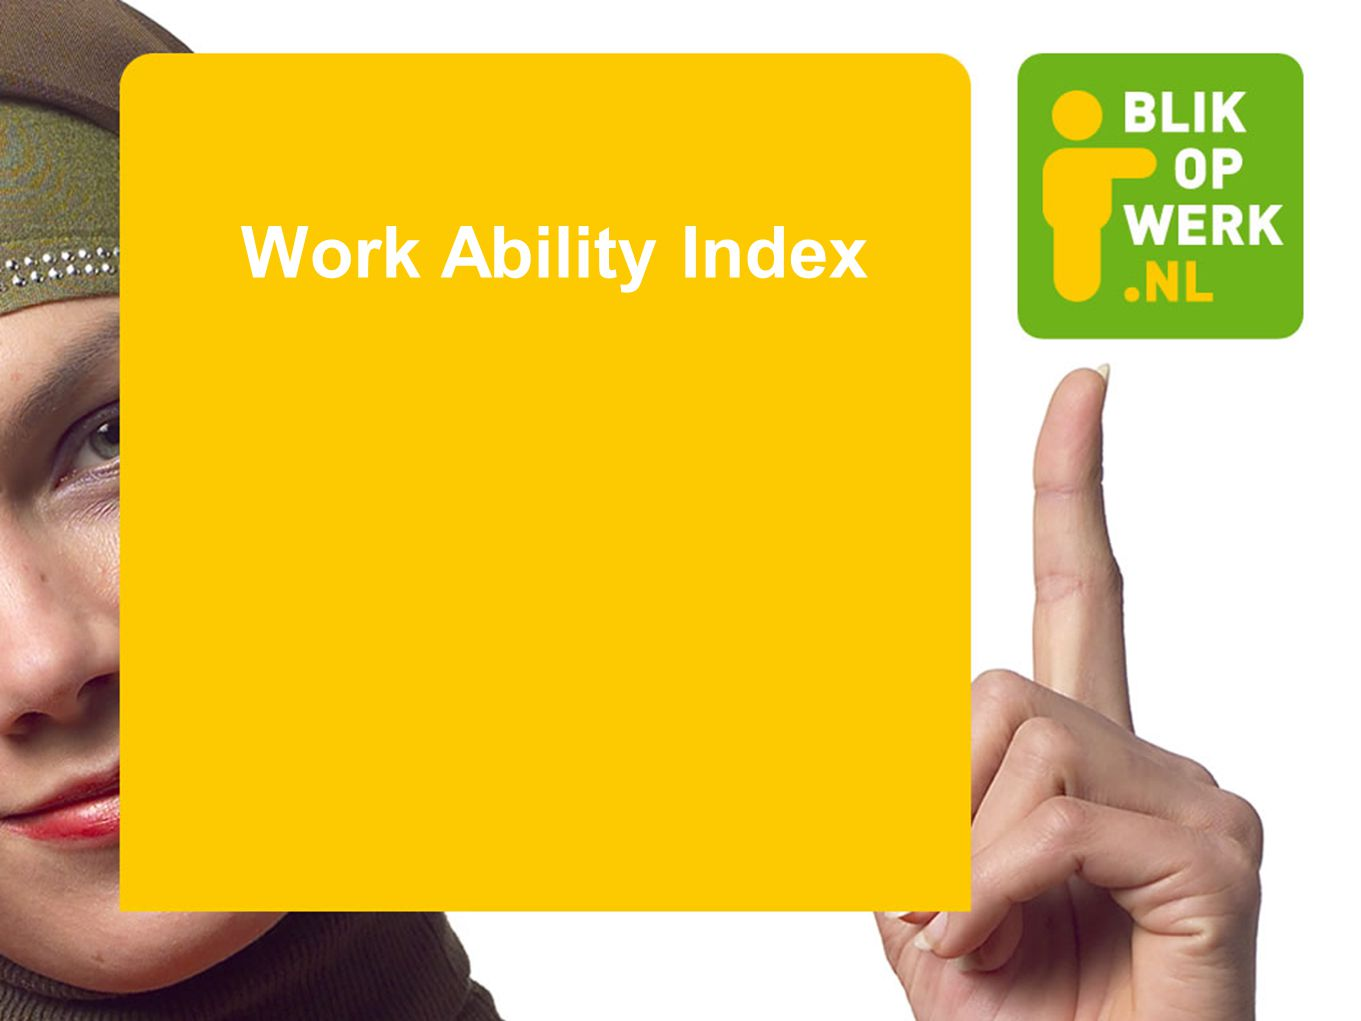 Work Ability Index